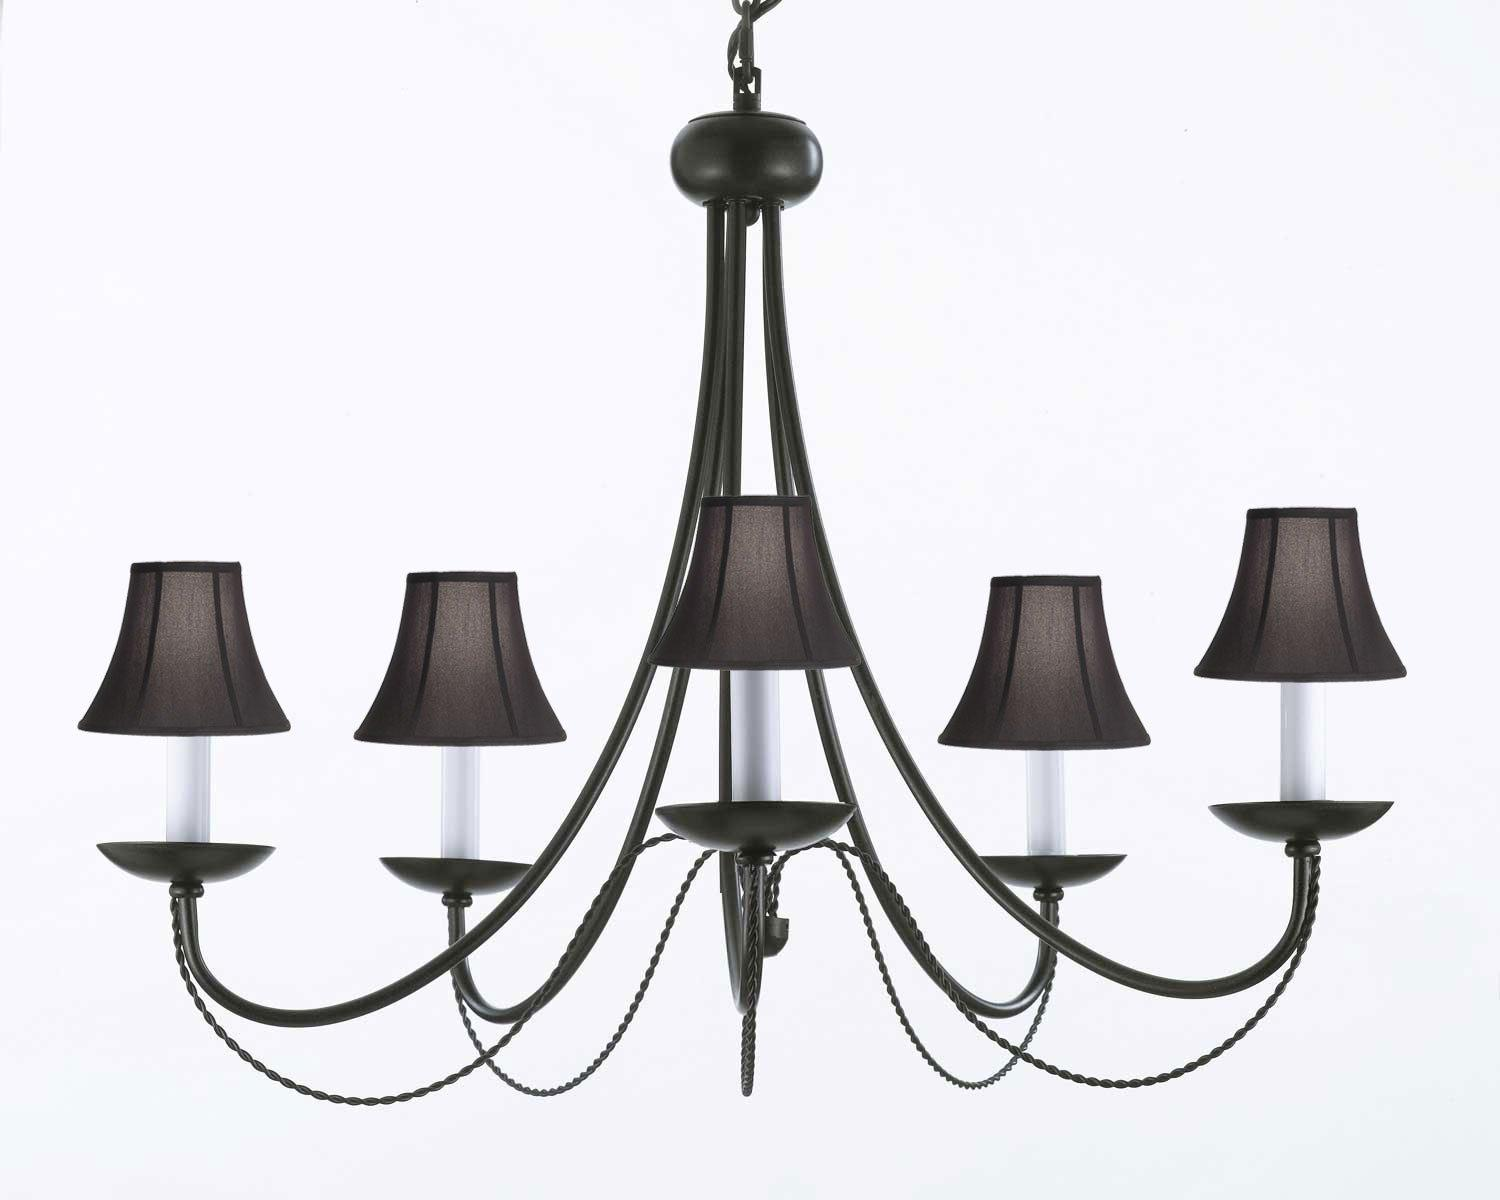 Wrought Iron Chandelier Lighting With Black Shades H22 x W26